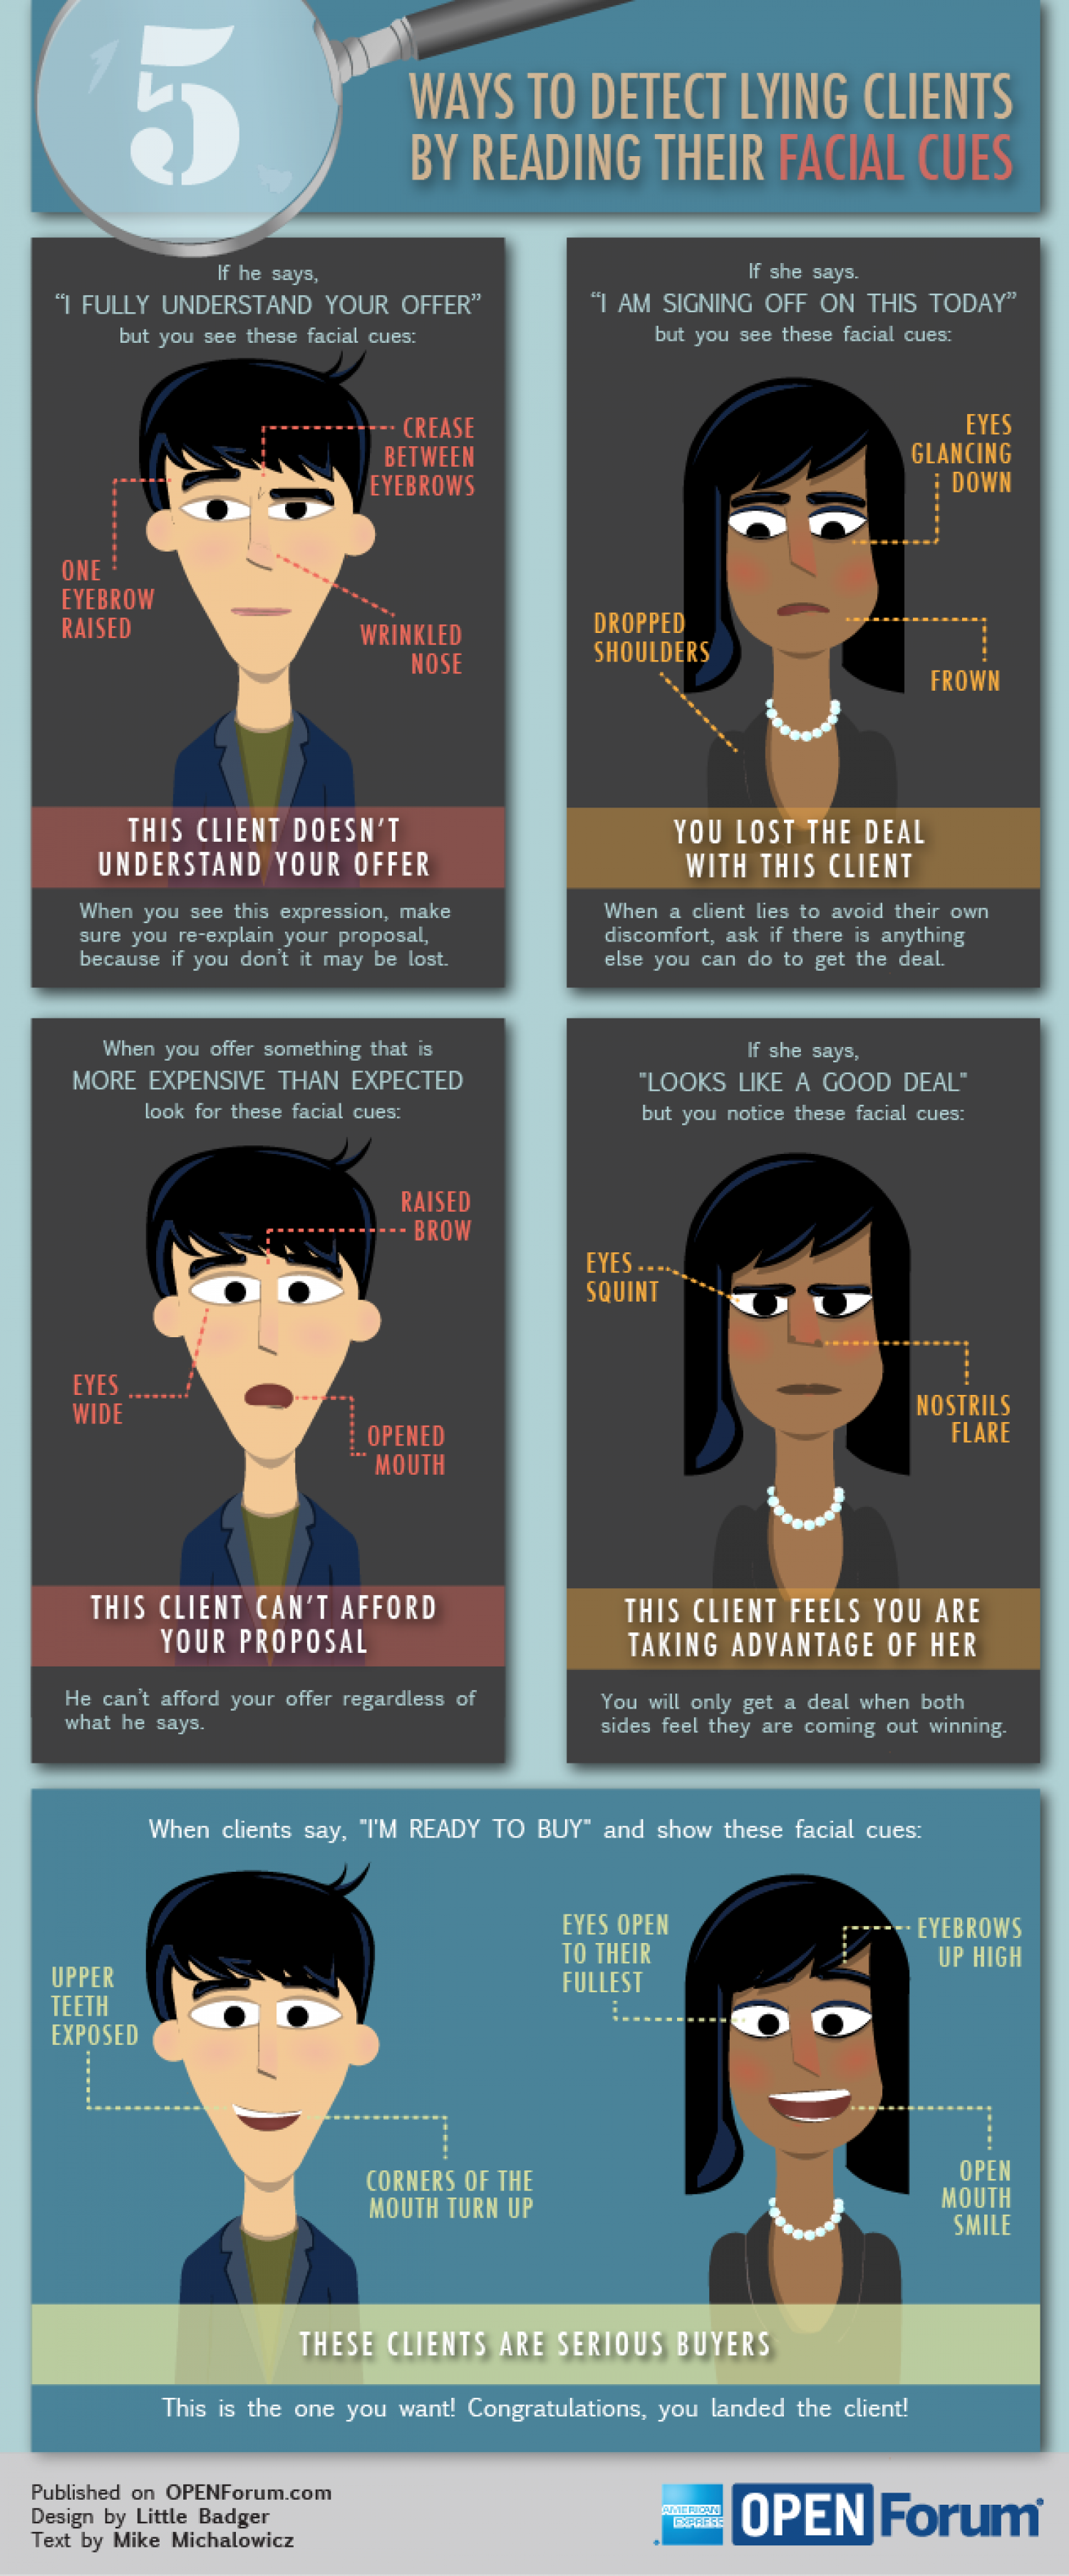 5 Ways to Detect Lying Clients by Reading Their Facial Cues Infographic